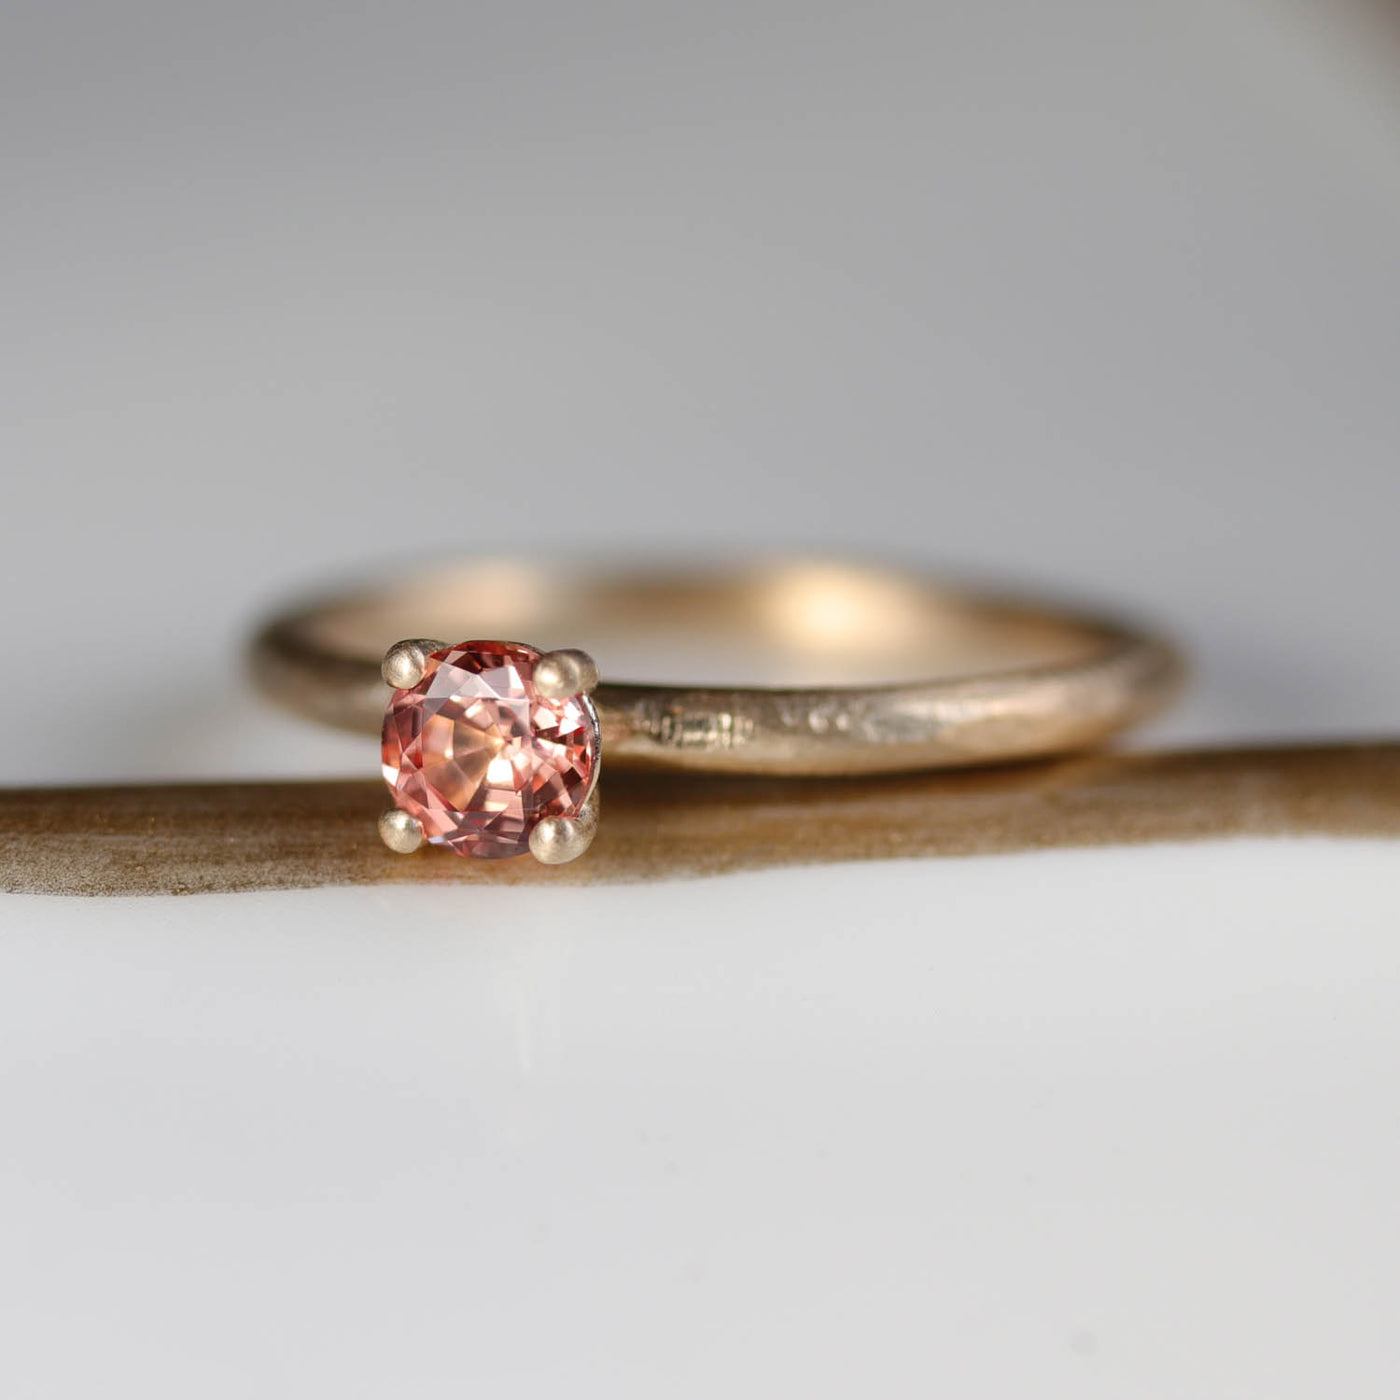 4mm Basket Solitaire with 4mm Chatham Peach Padparadscha Sapphire